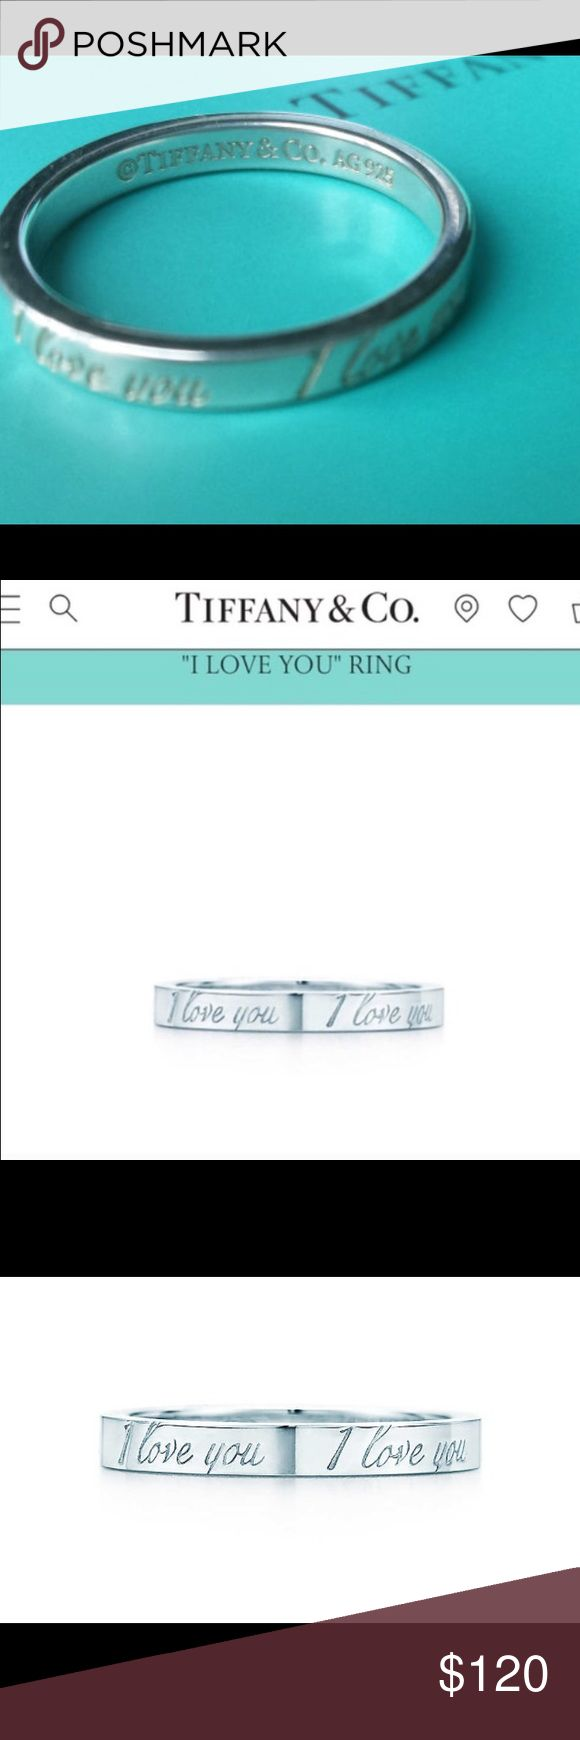 "Tiffany Ring - ""I love you"" Silver Tiffany's Ring, says I love you on it 4 times around the outer band. Inner band says ""Tiffany and Co"". I just no longer wear it, there is nothing wrong with it. It will come in a Tiffany's box, and will be cleaned before it's sent. It's in great shape. Is very simple and goes with every outfit. :) price can be negotiated slightly! Tiffany & Co. Jewelry Rings"